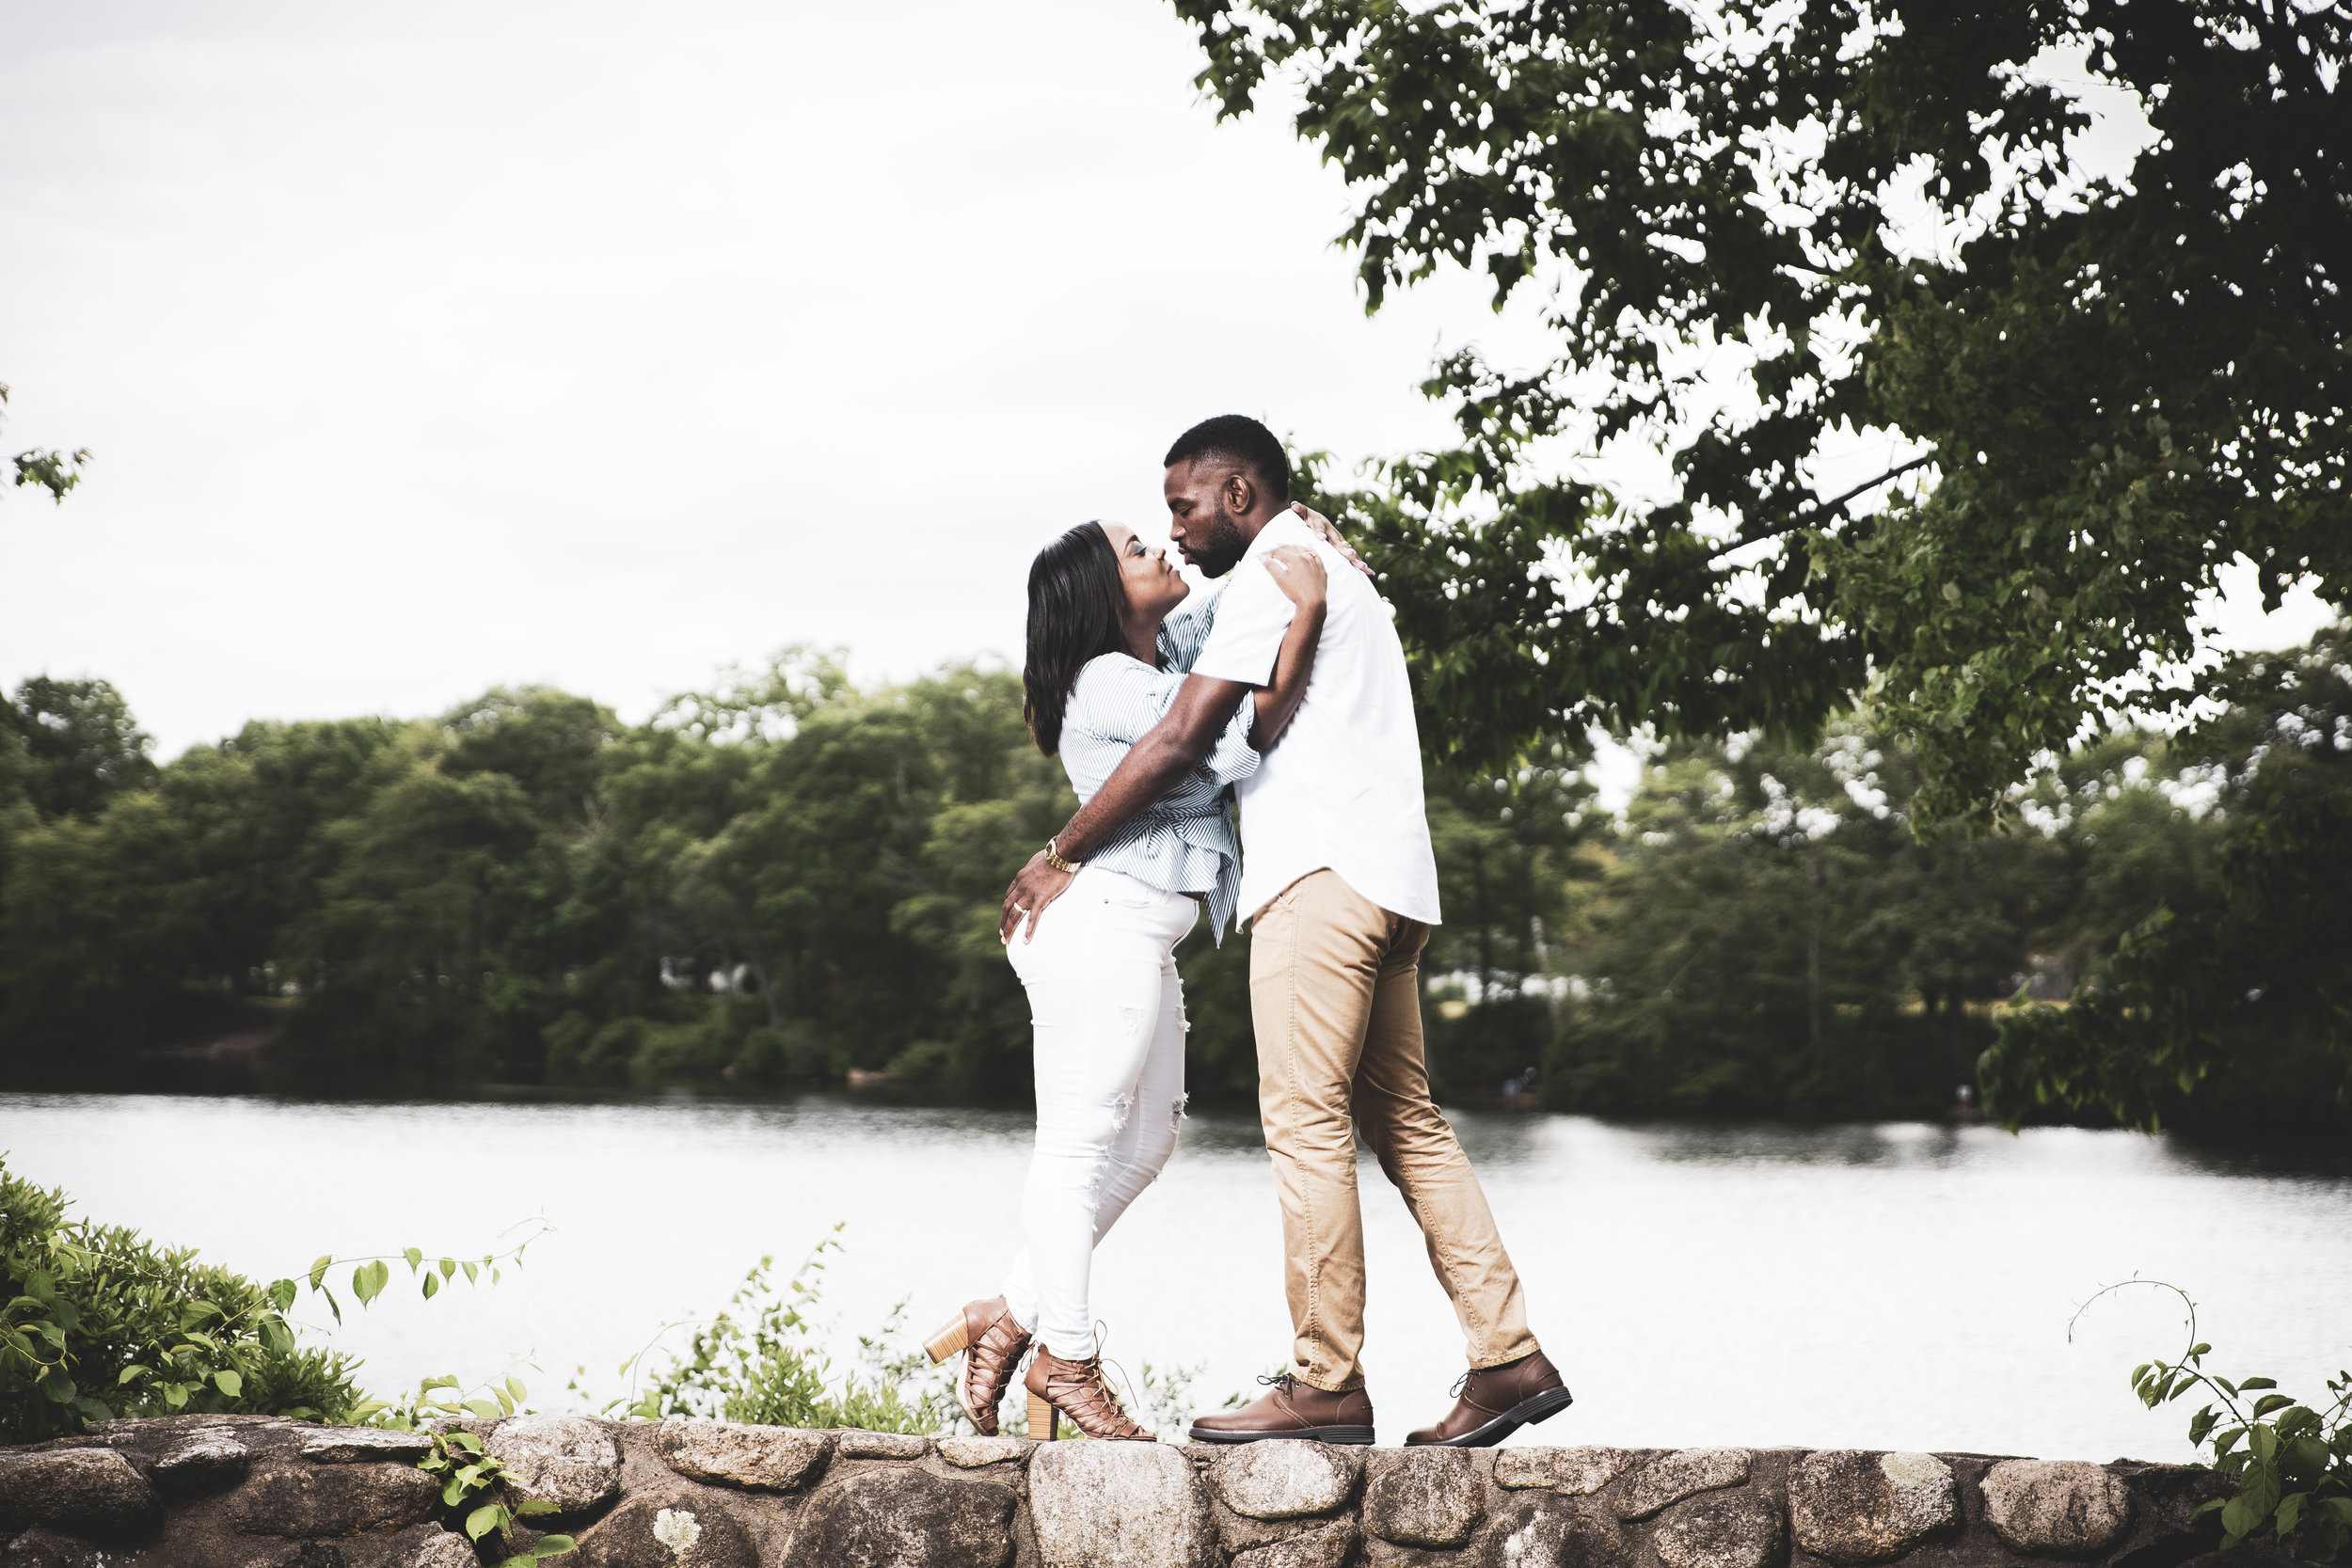 8C2A2014+Giovanni The Photographer+Best Boston Engagement Photography+Couples Session+Houghton's Pond Milton.jpg